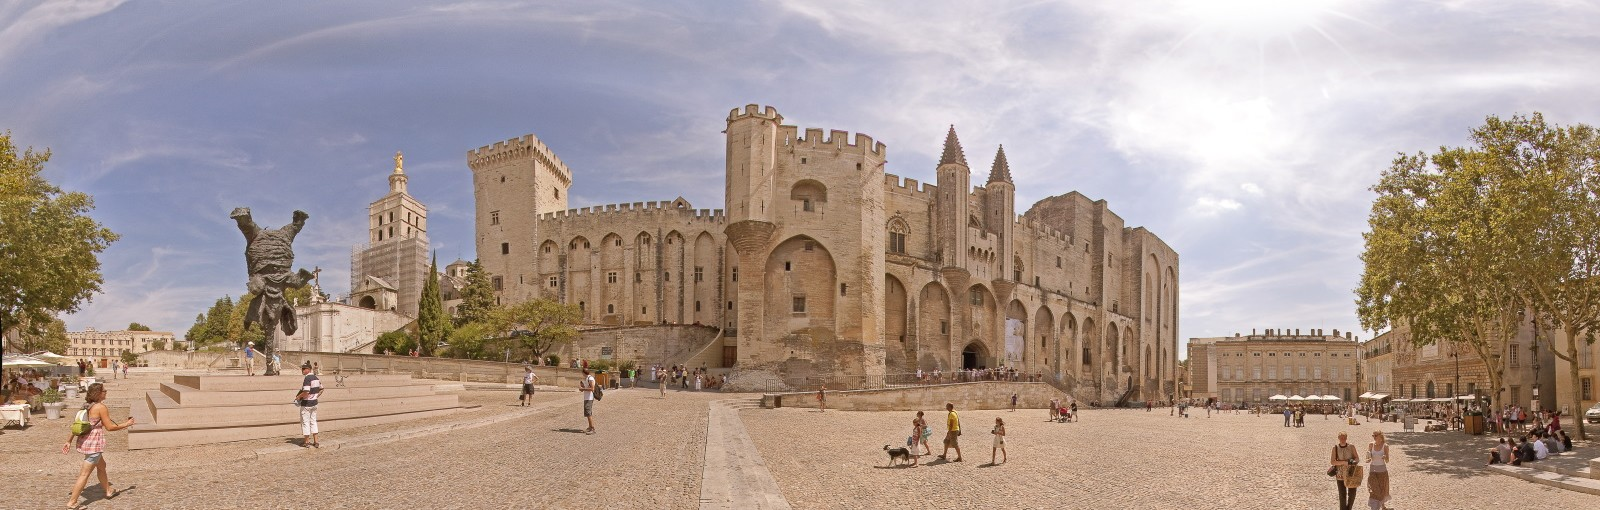 Tours Paris - Burgundy – Lyon - Provence – French Riviera - Multi-regional - Multiday tours from Paris